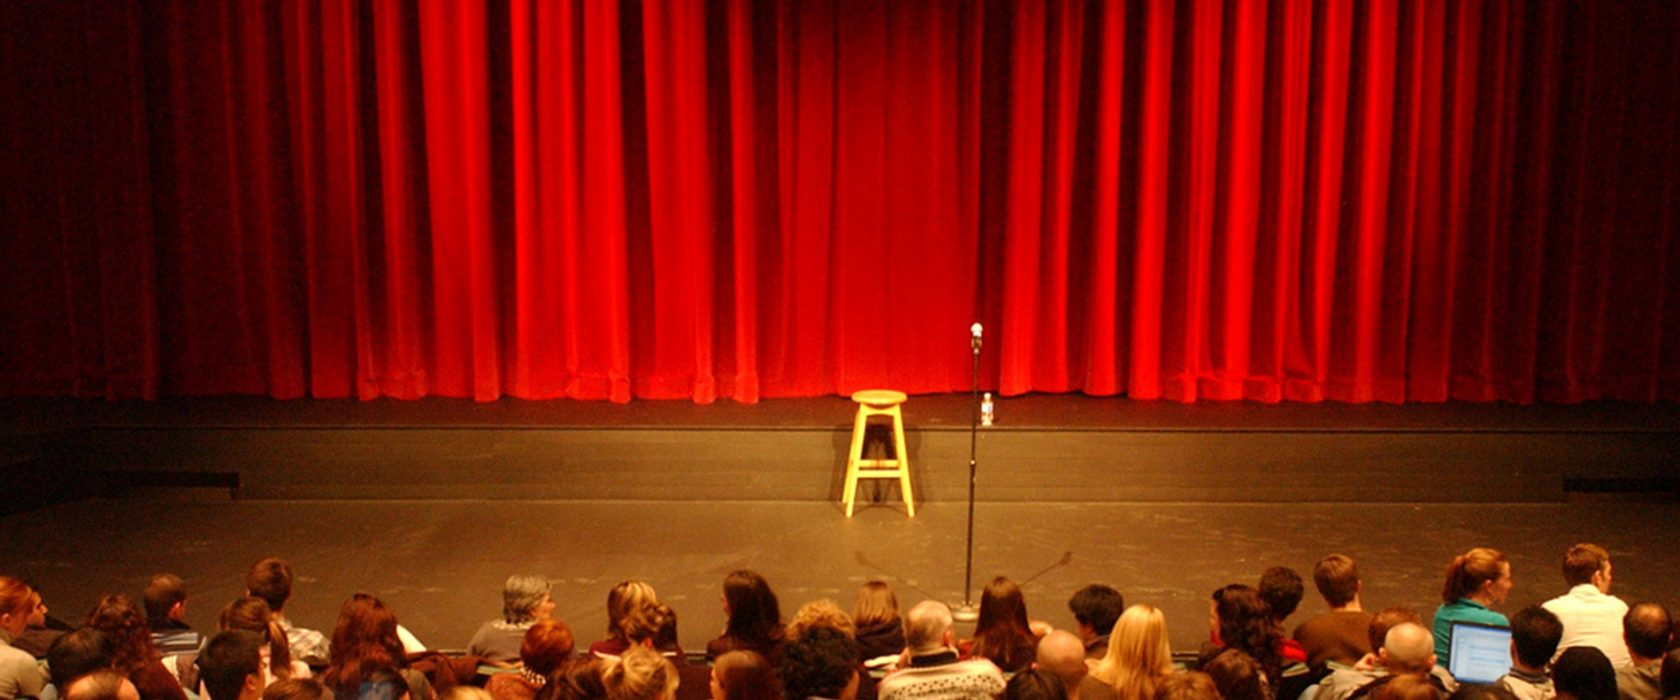 Pieter Toerien Theatre View Of Stage From The Audience